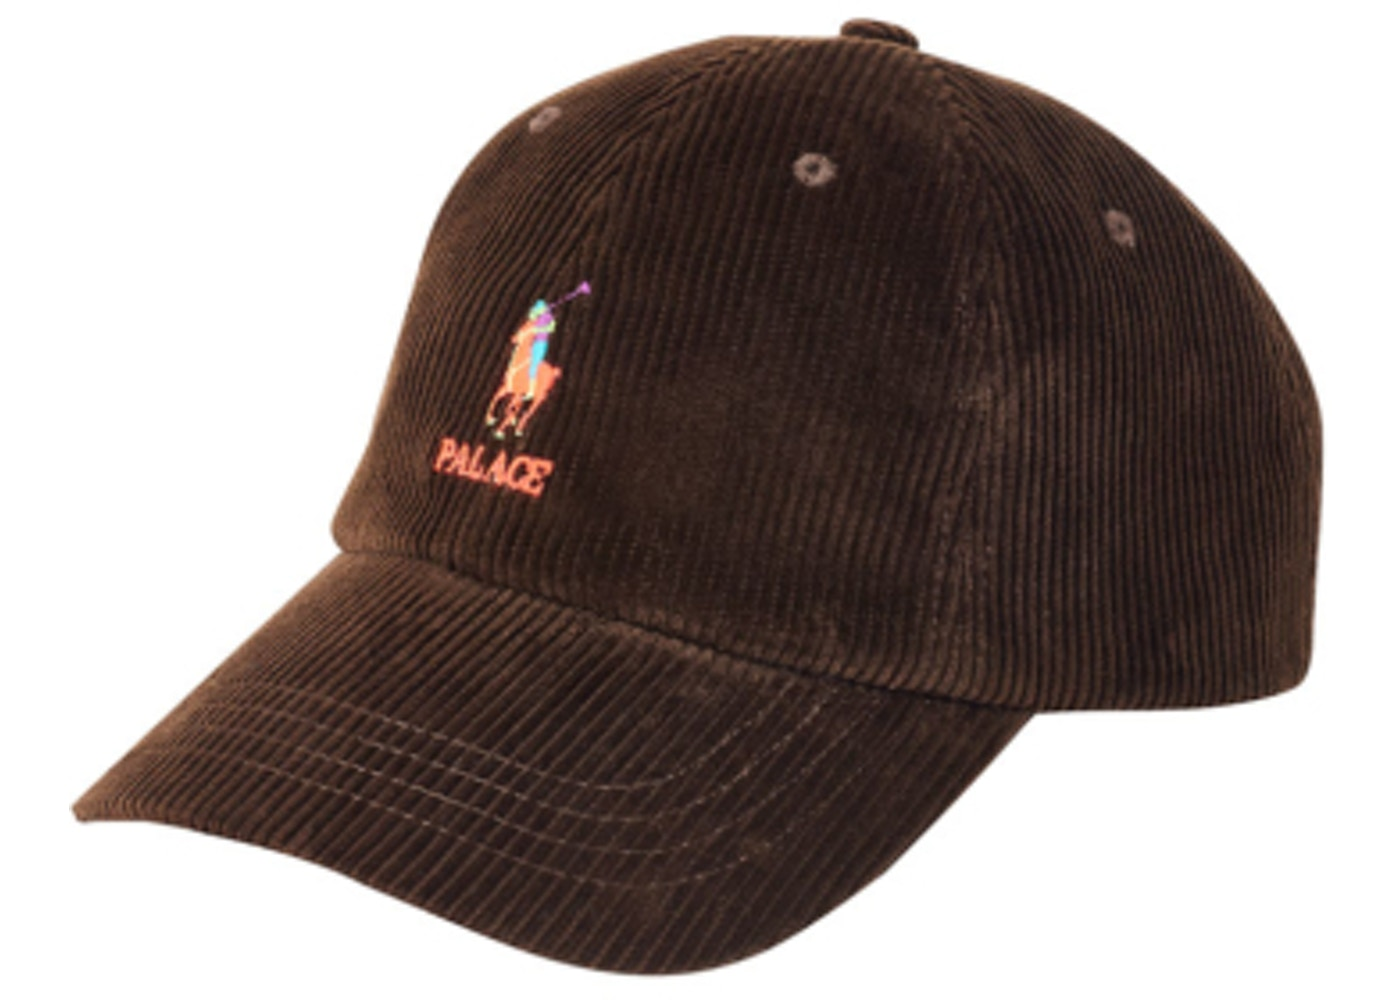 Palace Ralph Lauren Corduroy Classic Polo Cap Mohican Brown - FW18 afd0178d792